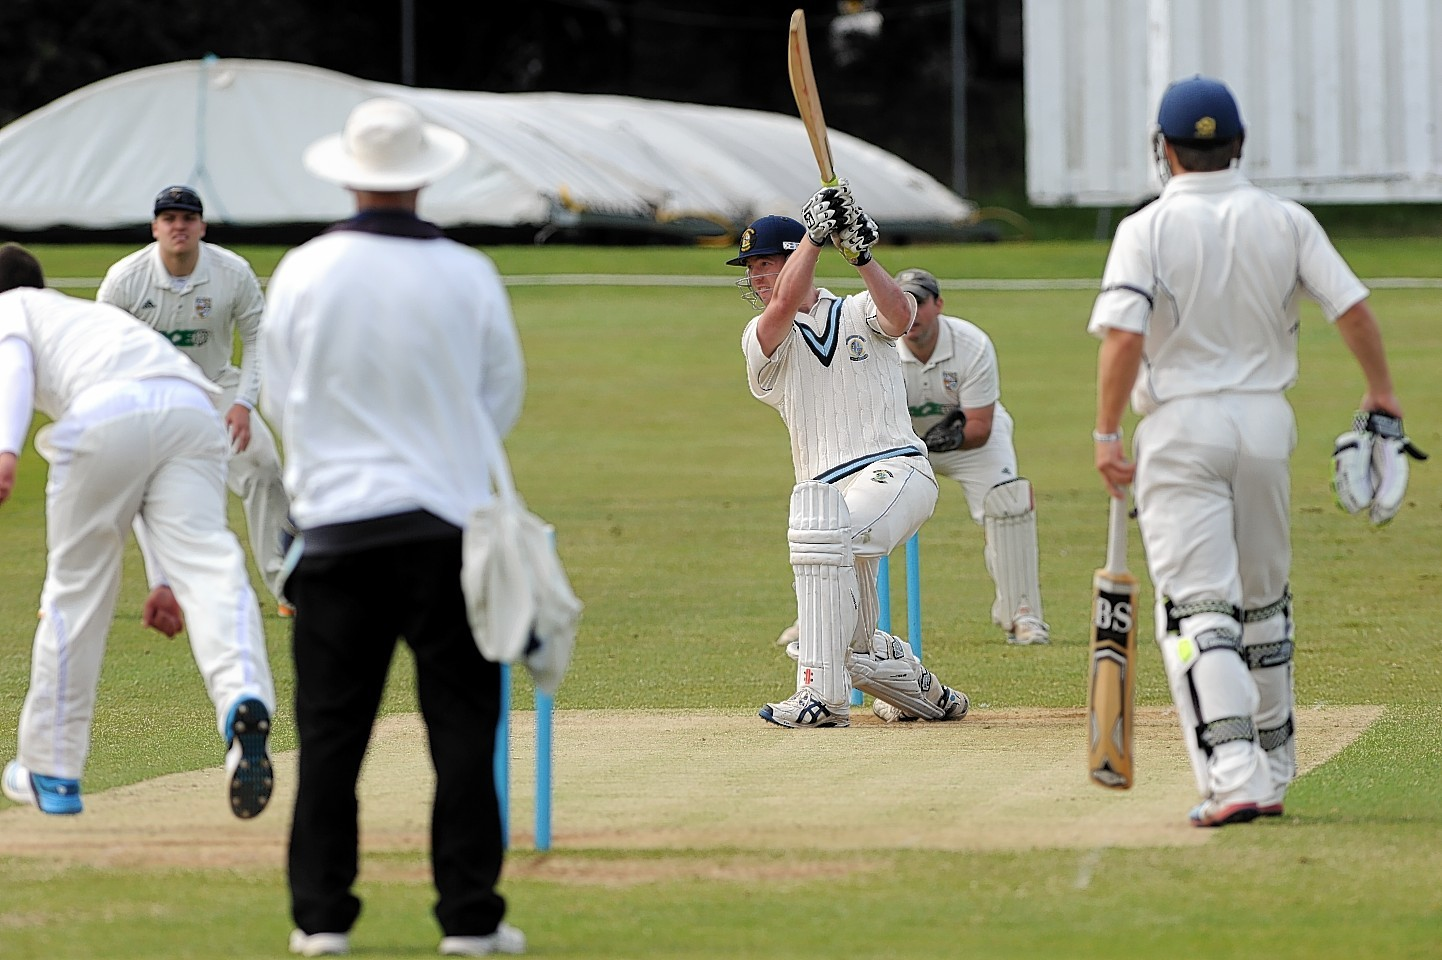 Aberdeenshire will meet Stoneywood-Dyce in a weekend double-header.